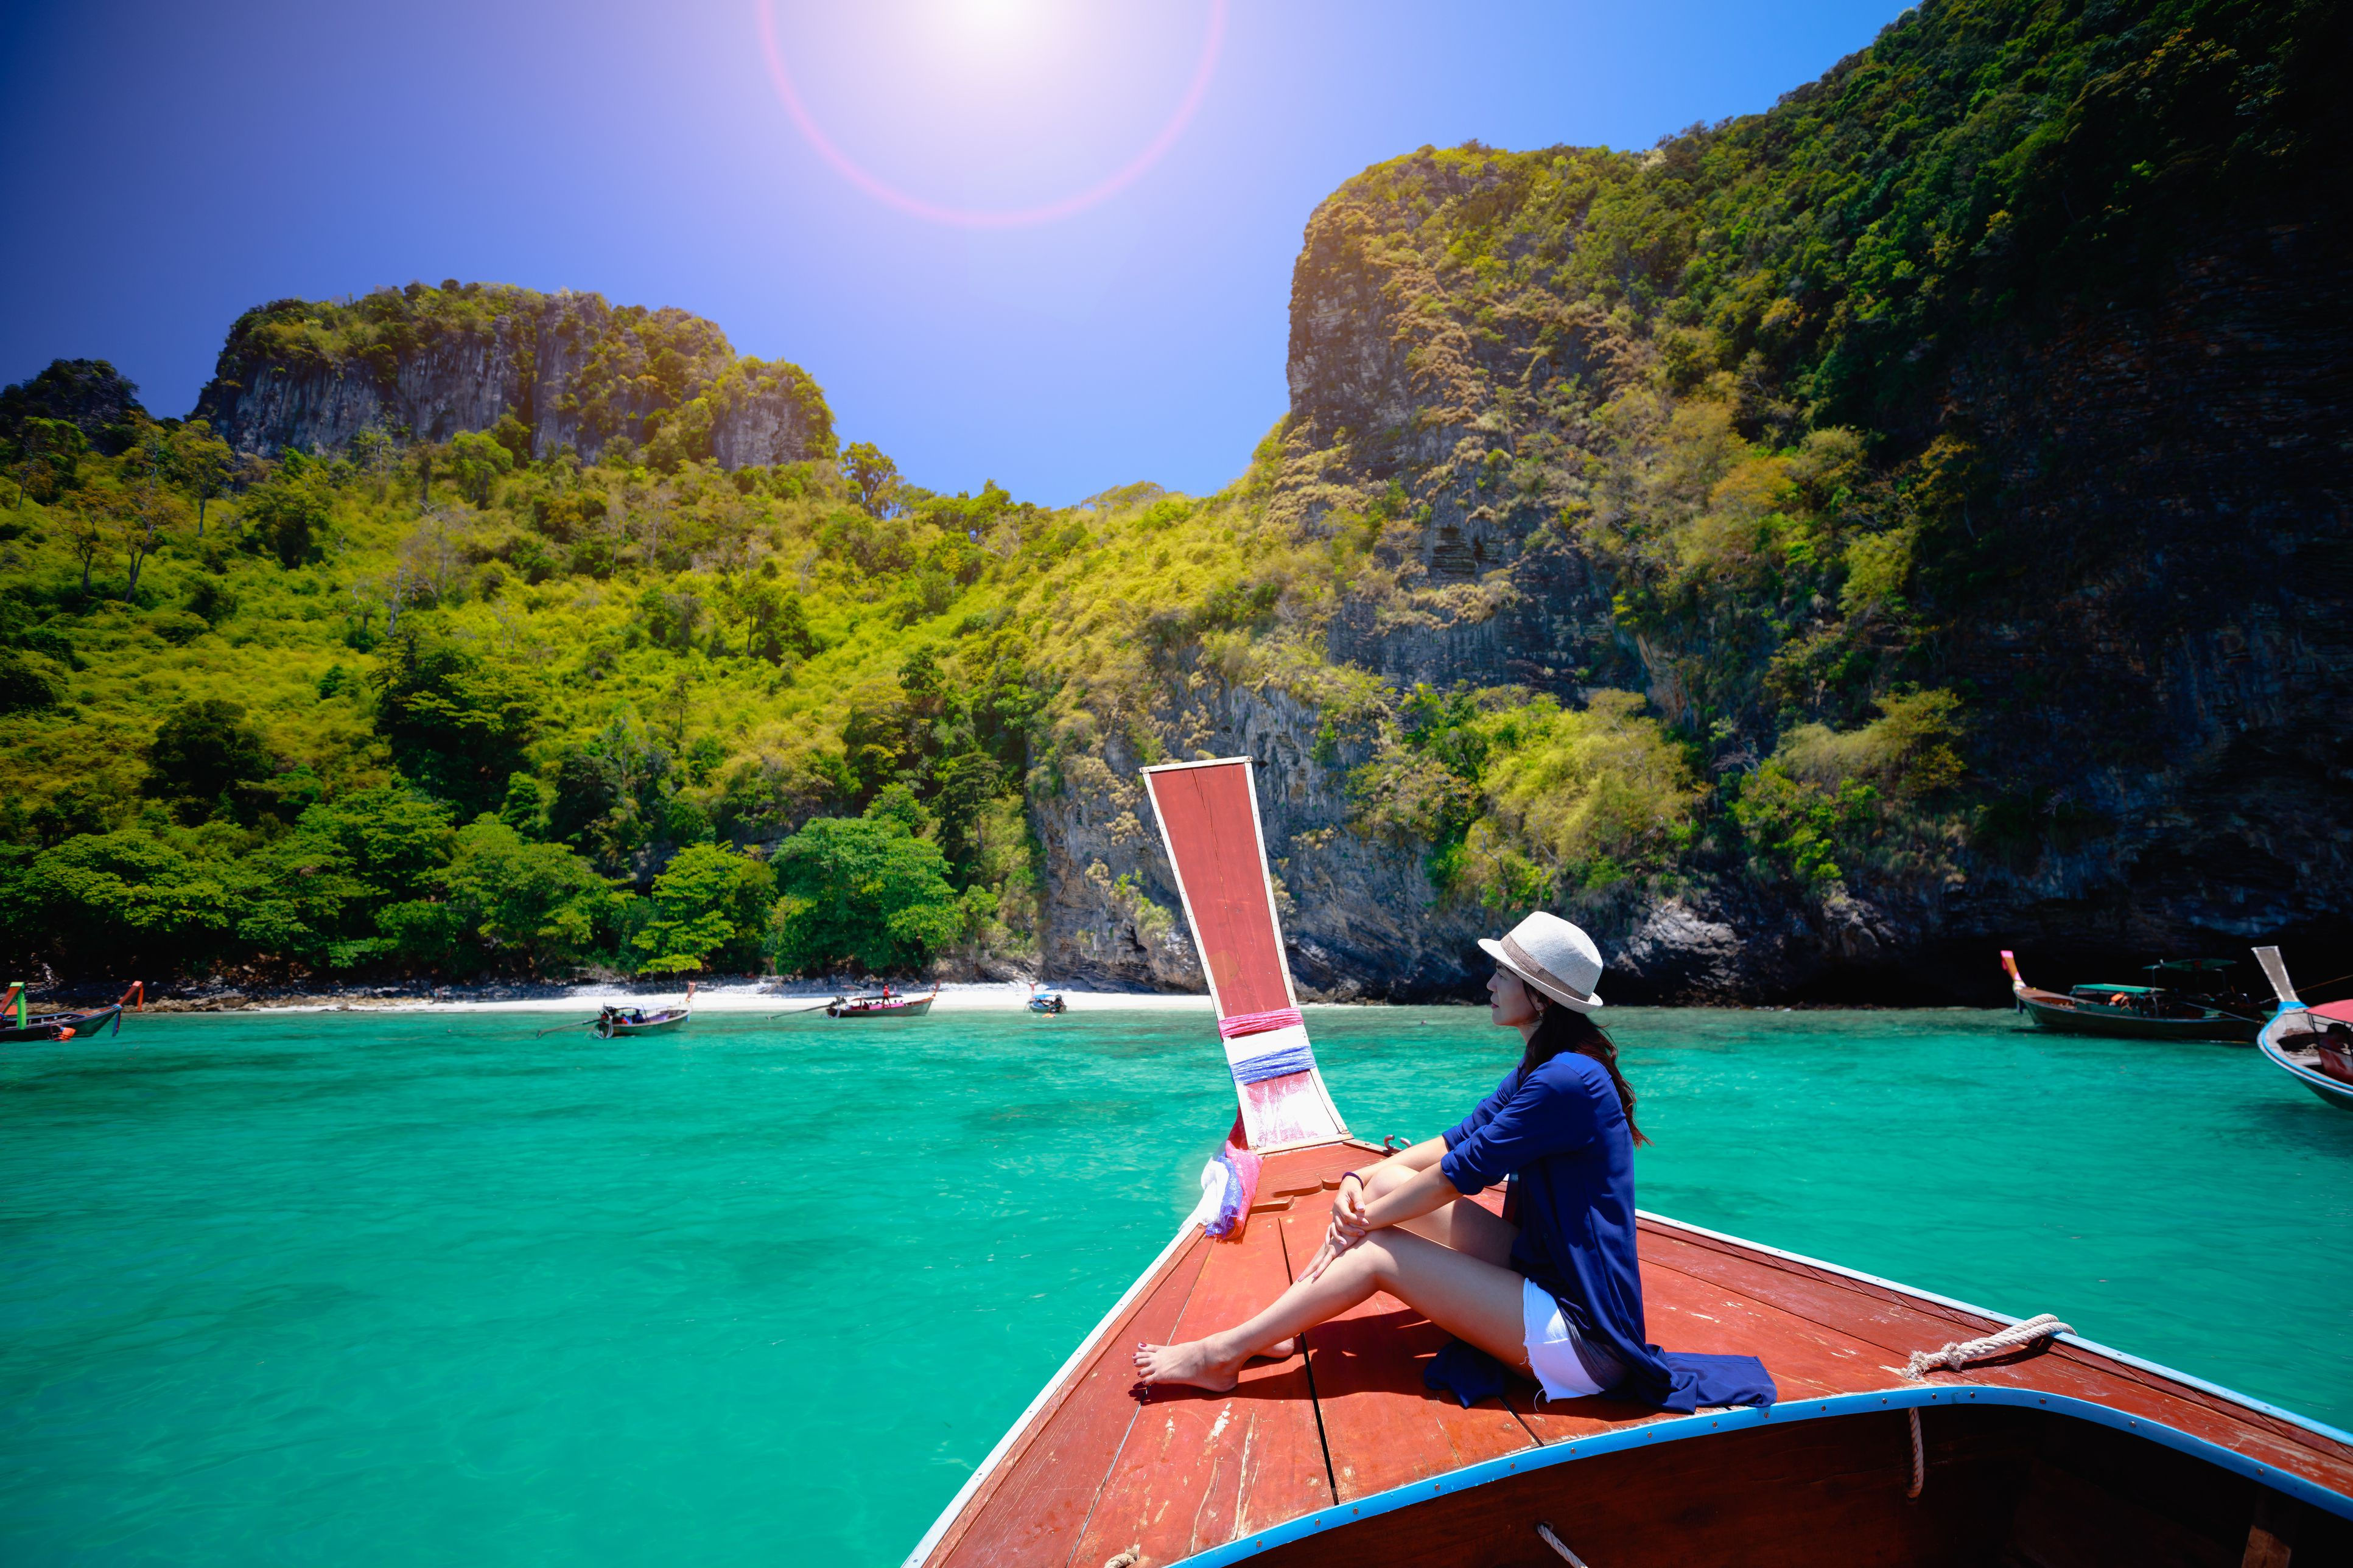 Female traveler on a boat in Thailand